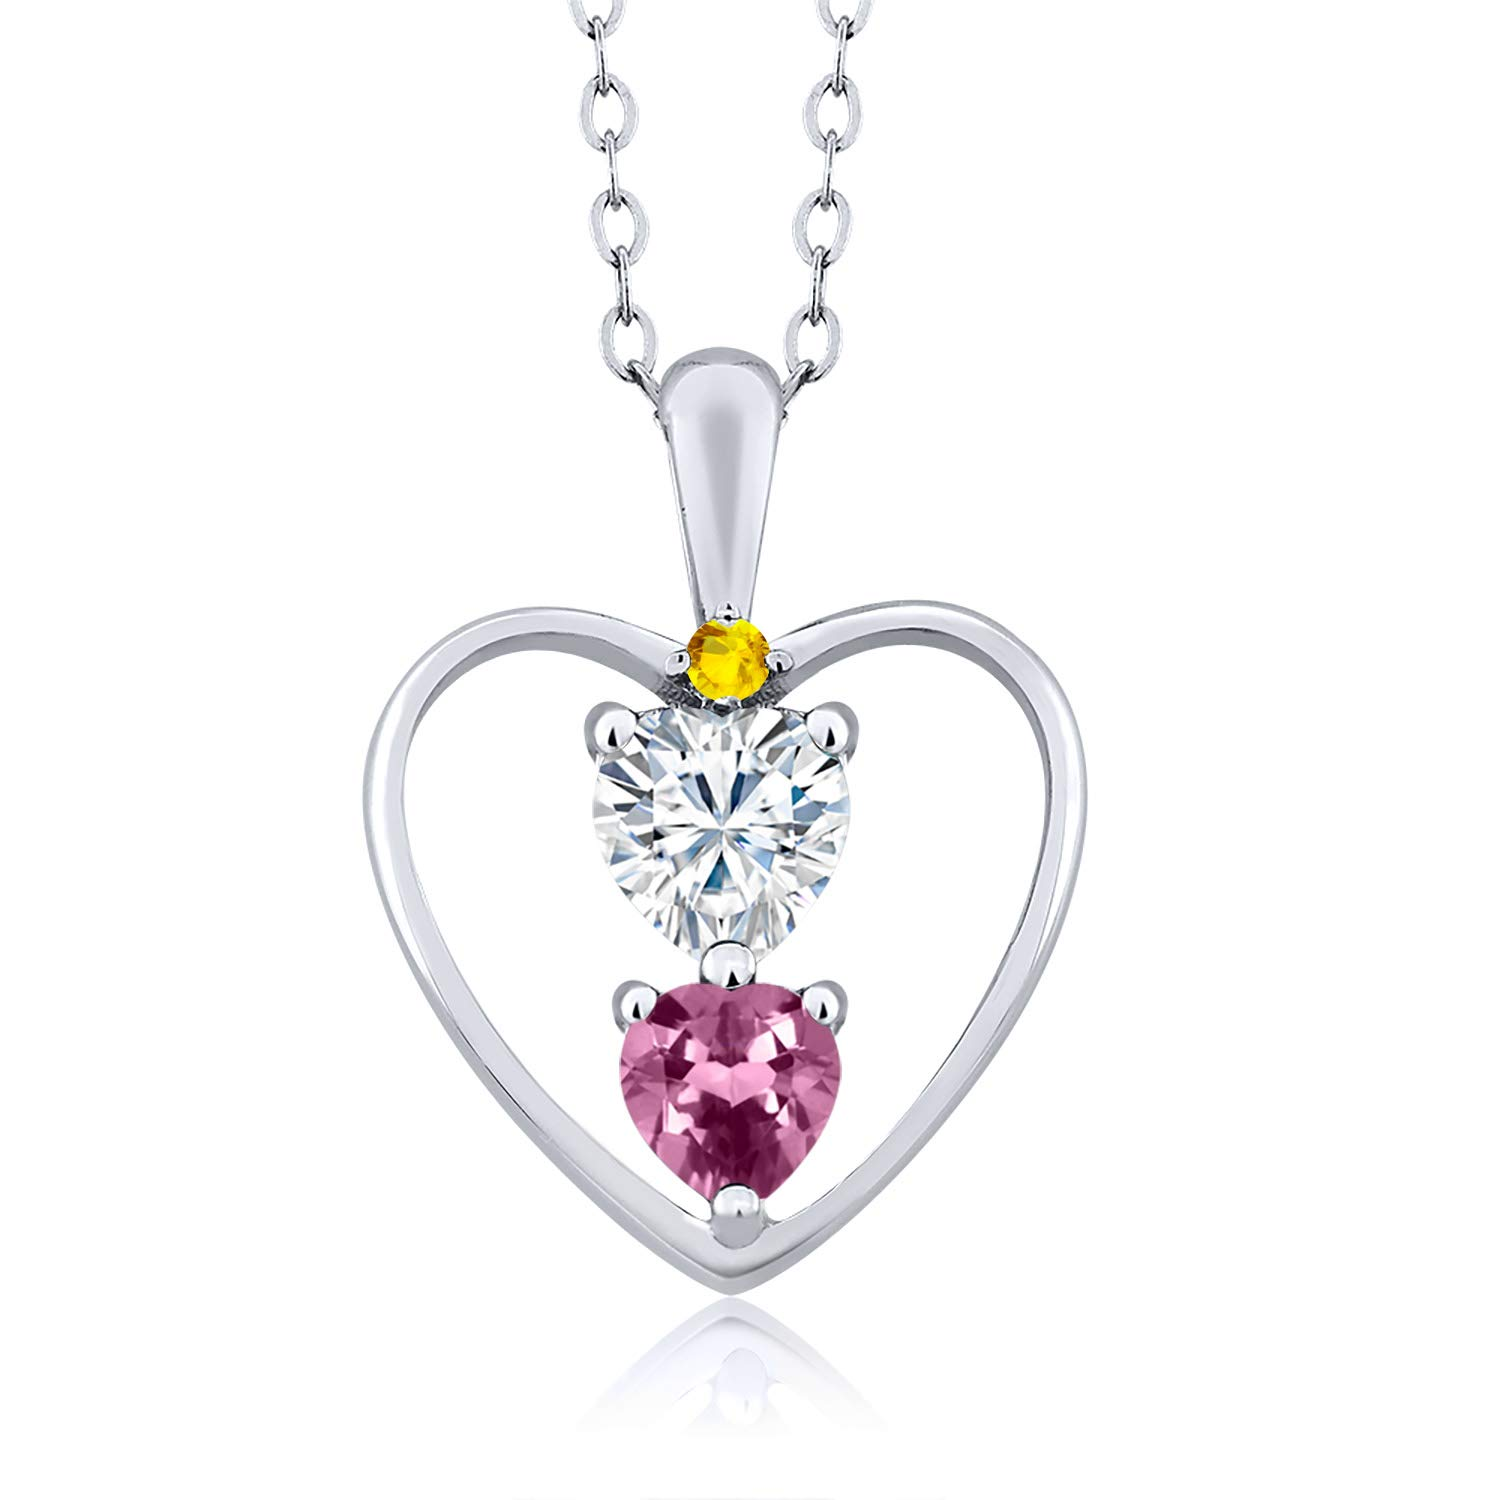 Heart Shape 0.50ct 925 Sterling Silver Pendant Forever Brilliant Created Moissanite by Charles /& Colvard and Tourmaline DEW GHI